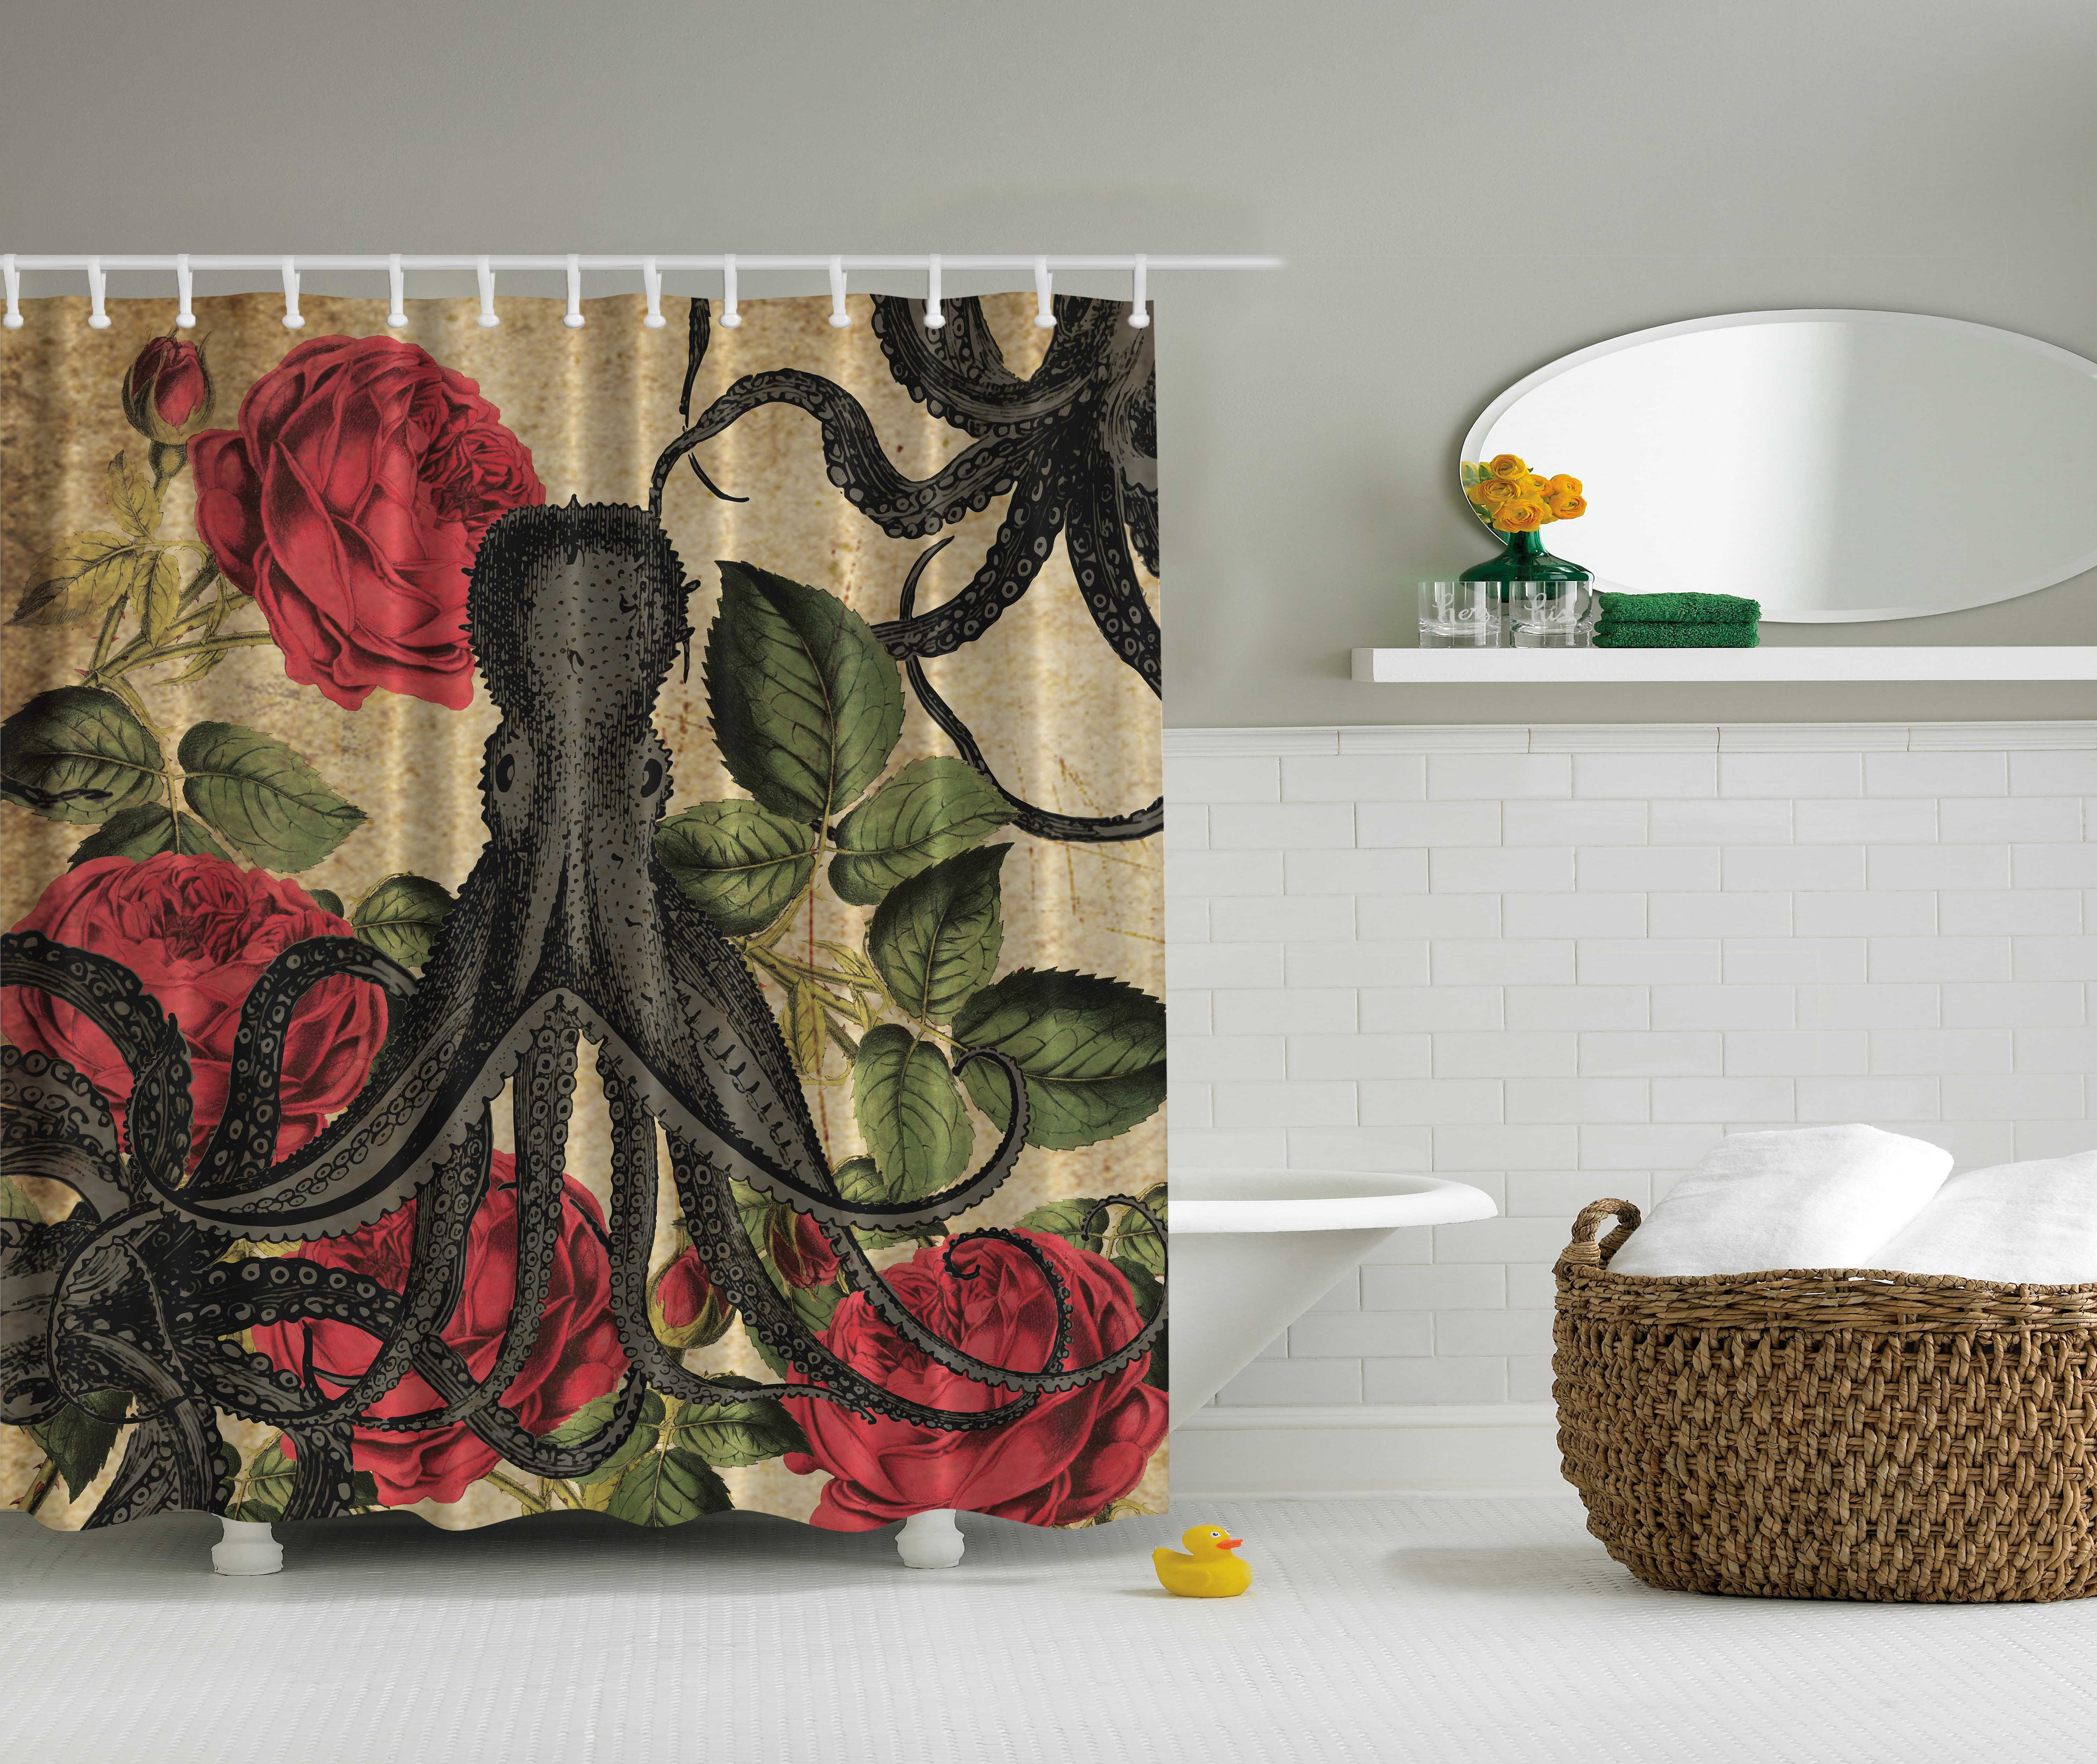 Kraken shower curtain - Image Is Loading Nautical Sea Monster Octopus In Ocean With Roses